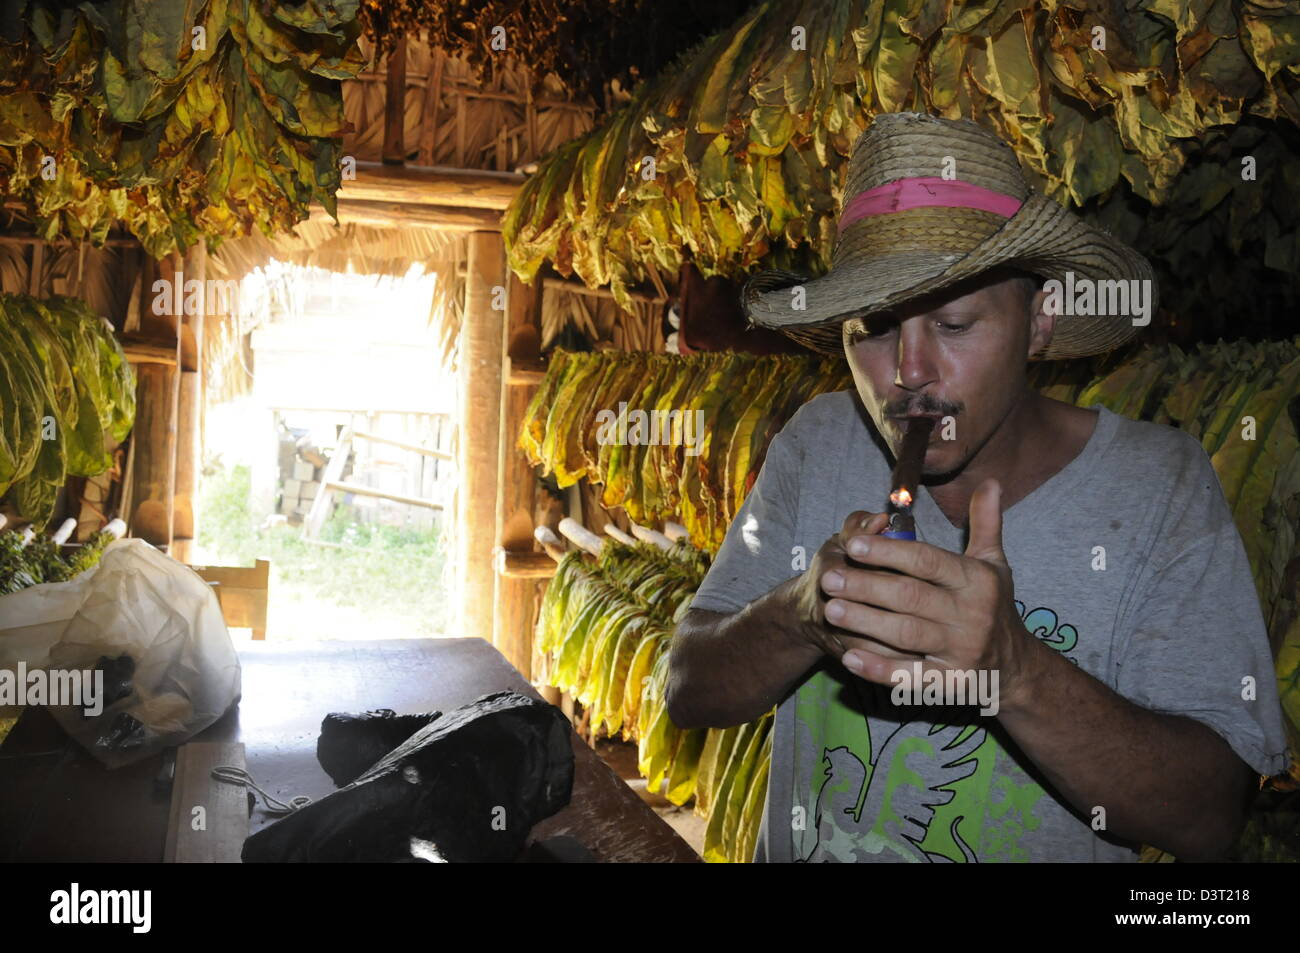 Ramon a tobacco farmer lights his cigar in front of drying tobacco leaves - Stock Image